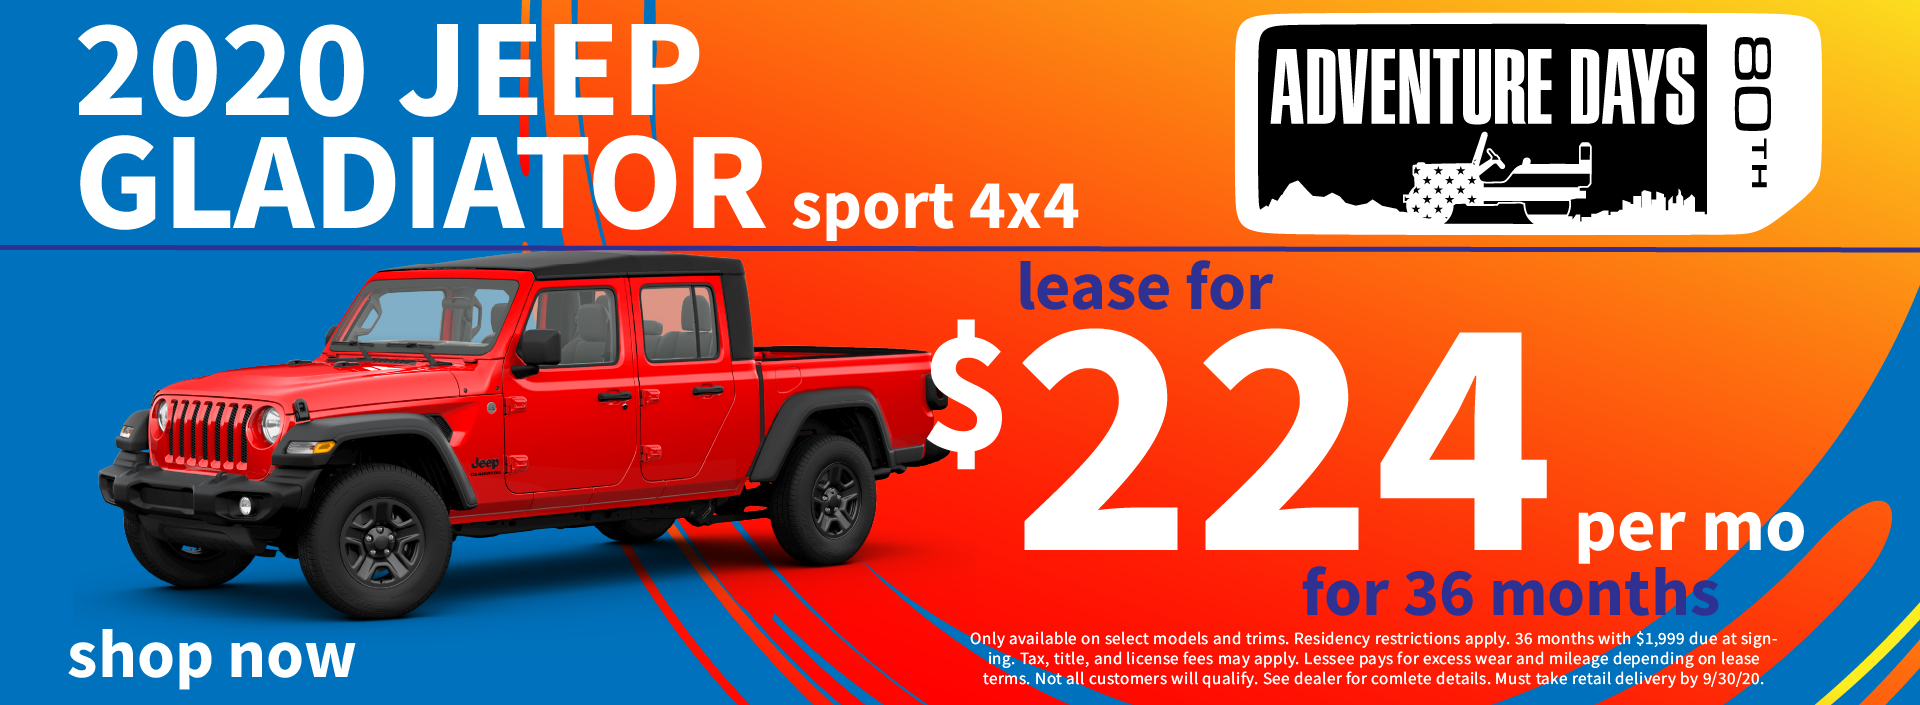 2020 Jeep Gladiator Lease Special